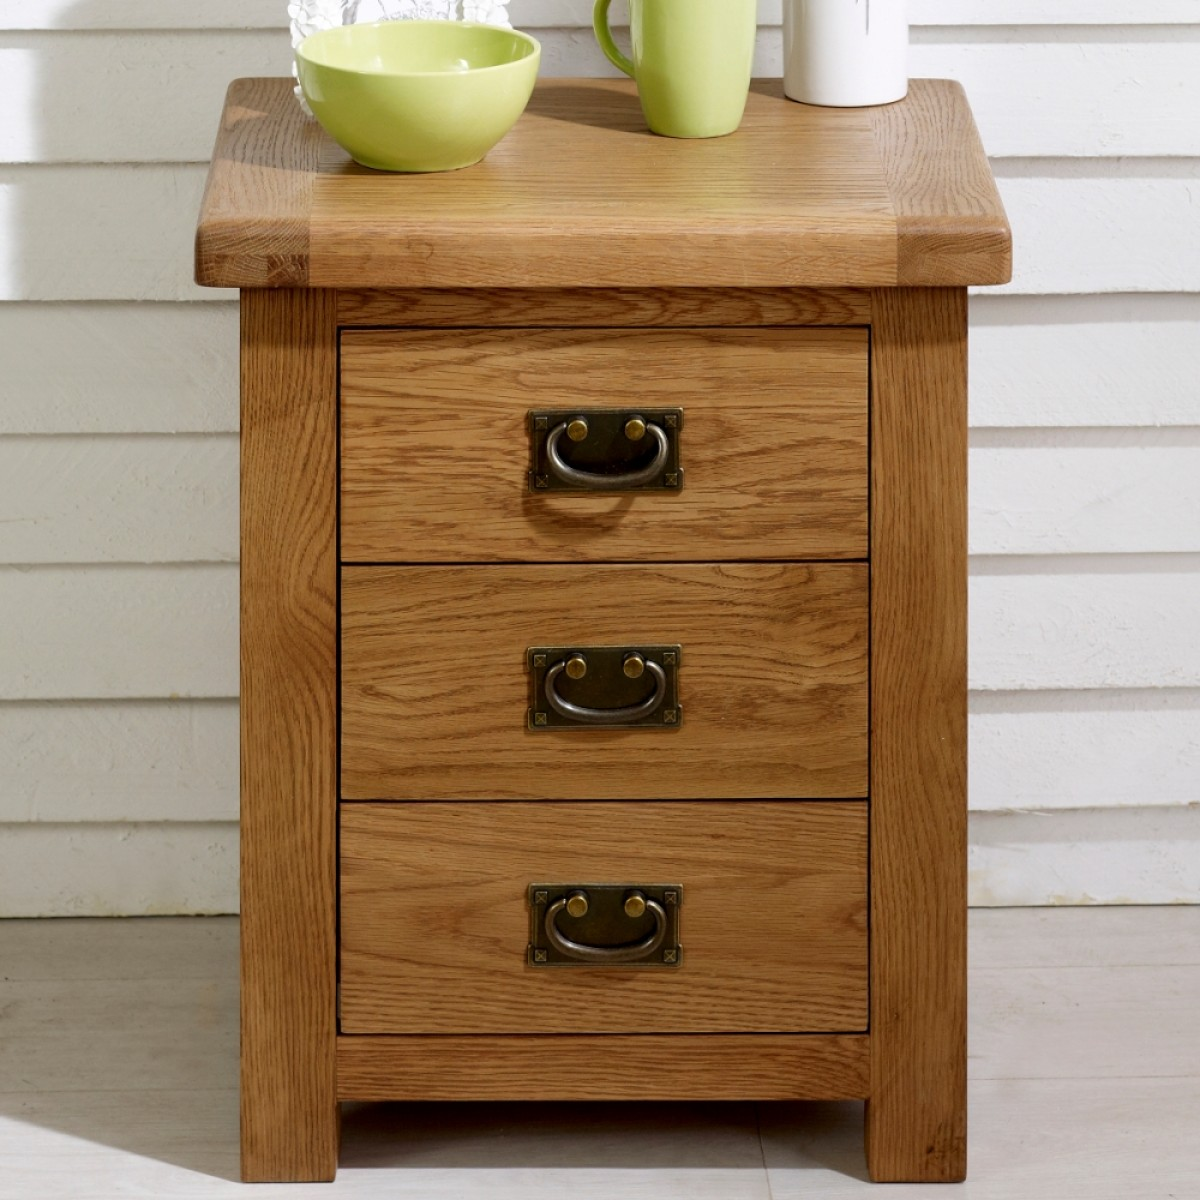 malvern oak 3 drawer bedside table. Black Bedroom Furniture Sets. Home Design Ideas